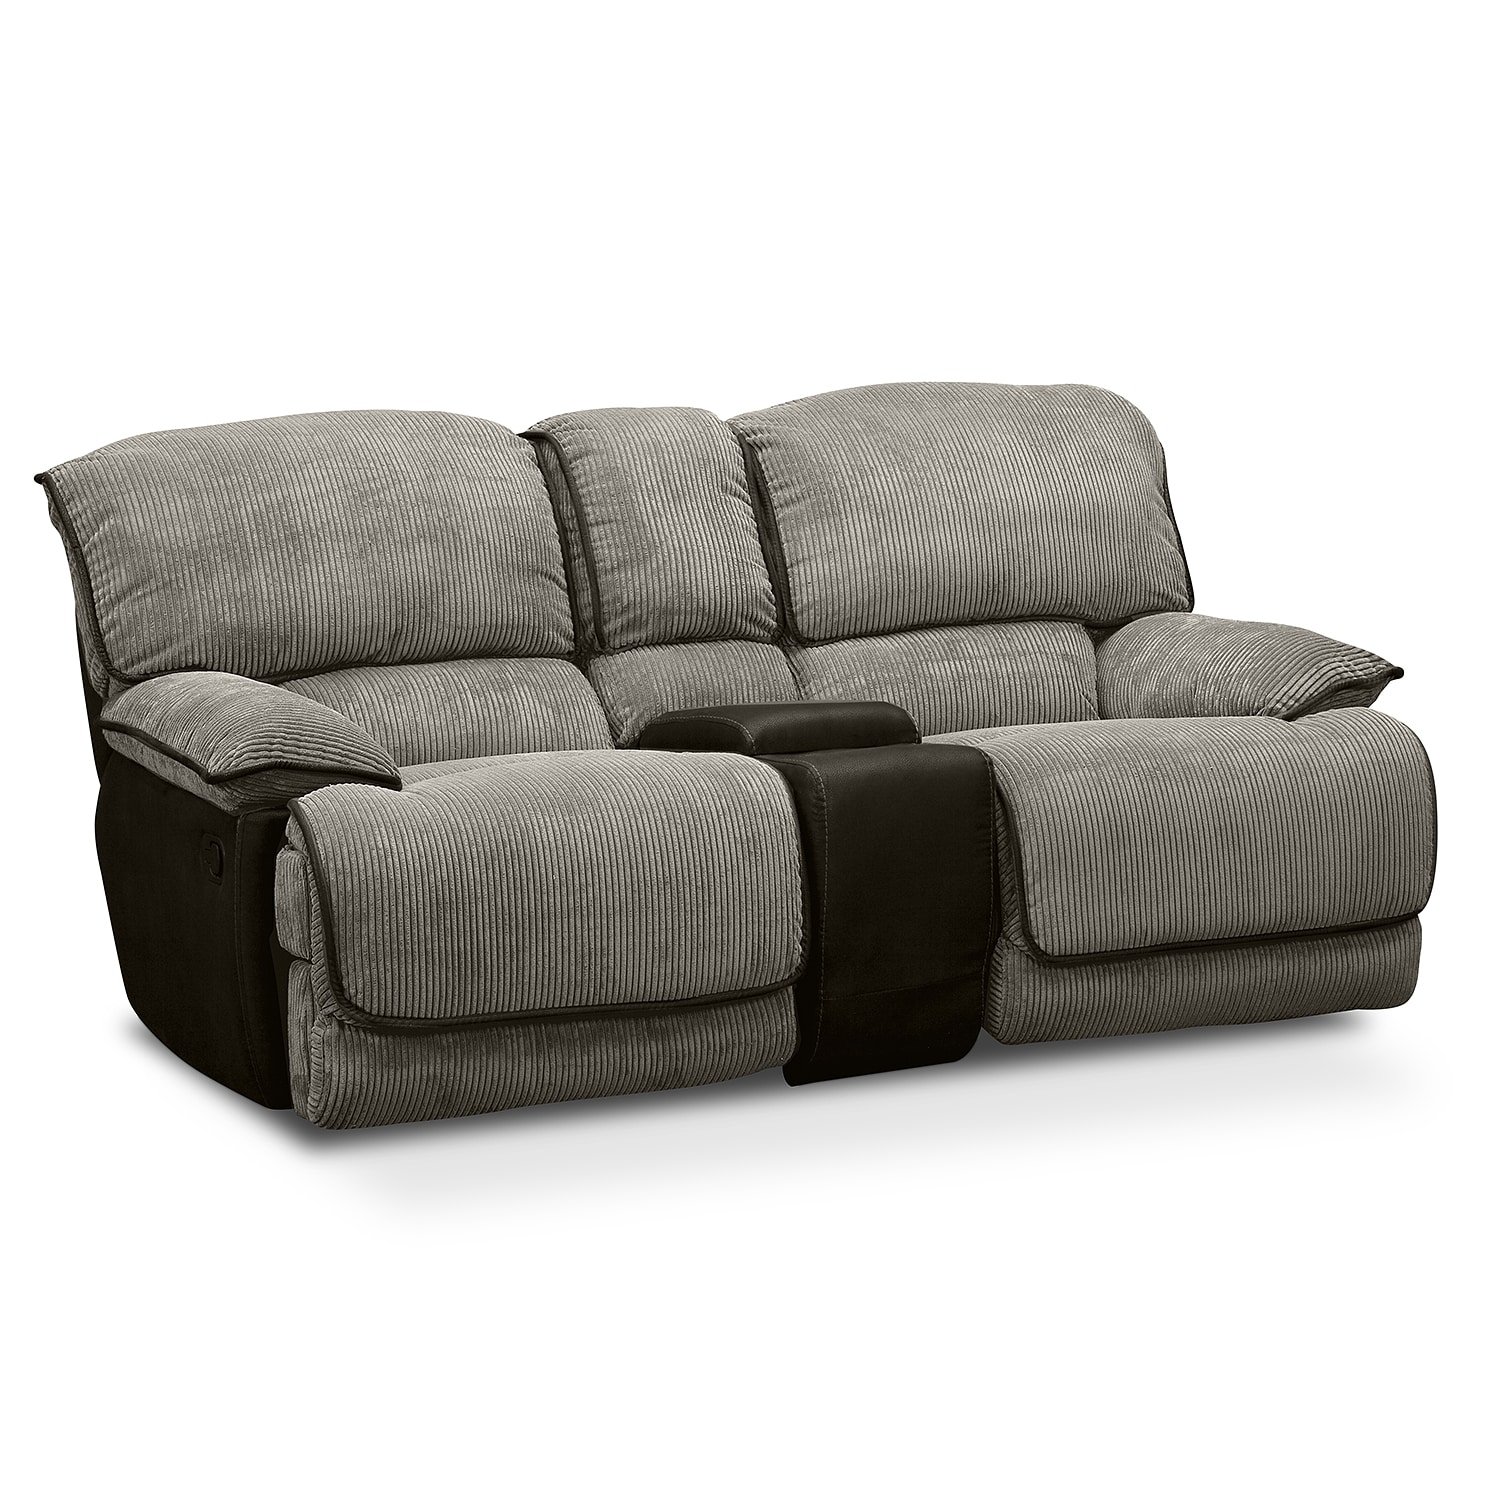 Laguna Gliding Reclining Loveseat Steel Value City  : 270251 from www.valuecityfurniture.com size 1500 x 1500 jpeg 726kB